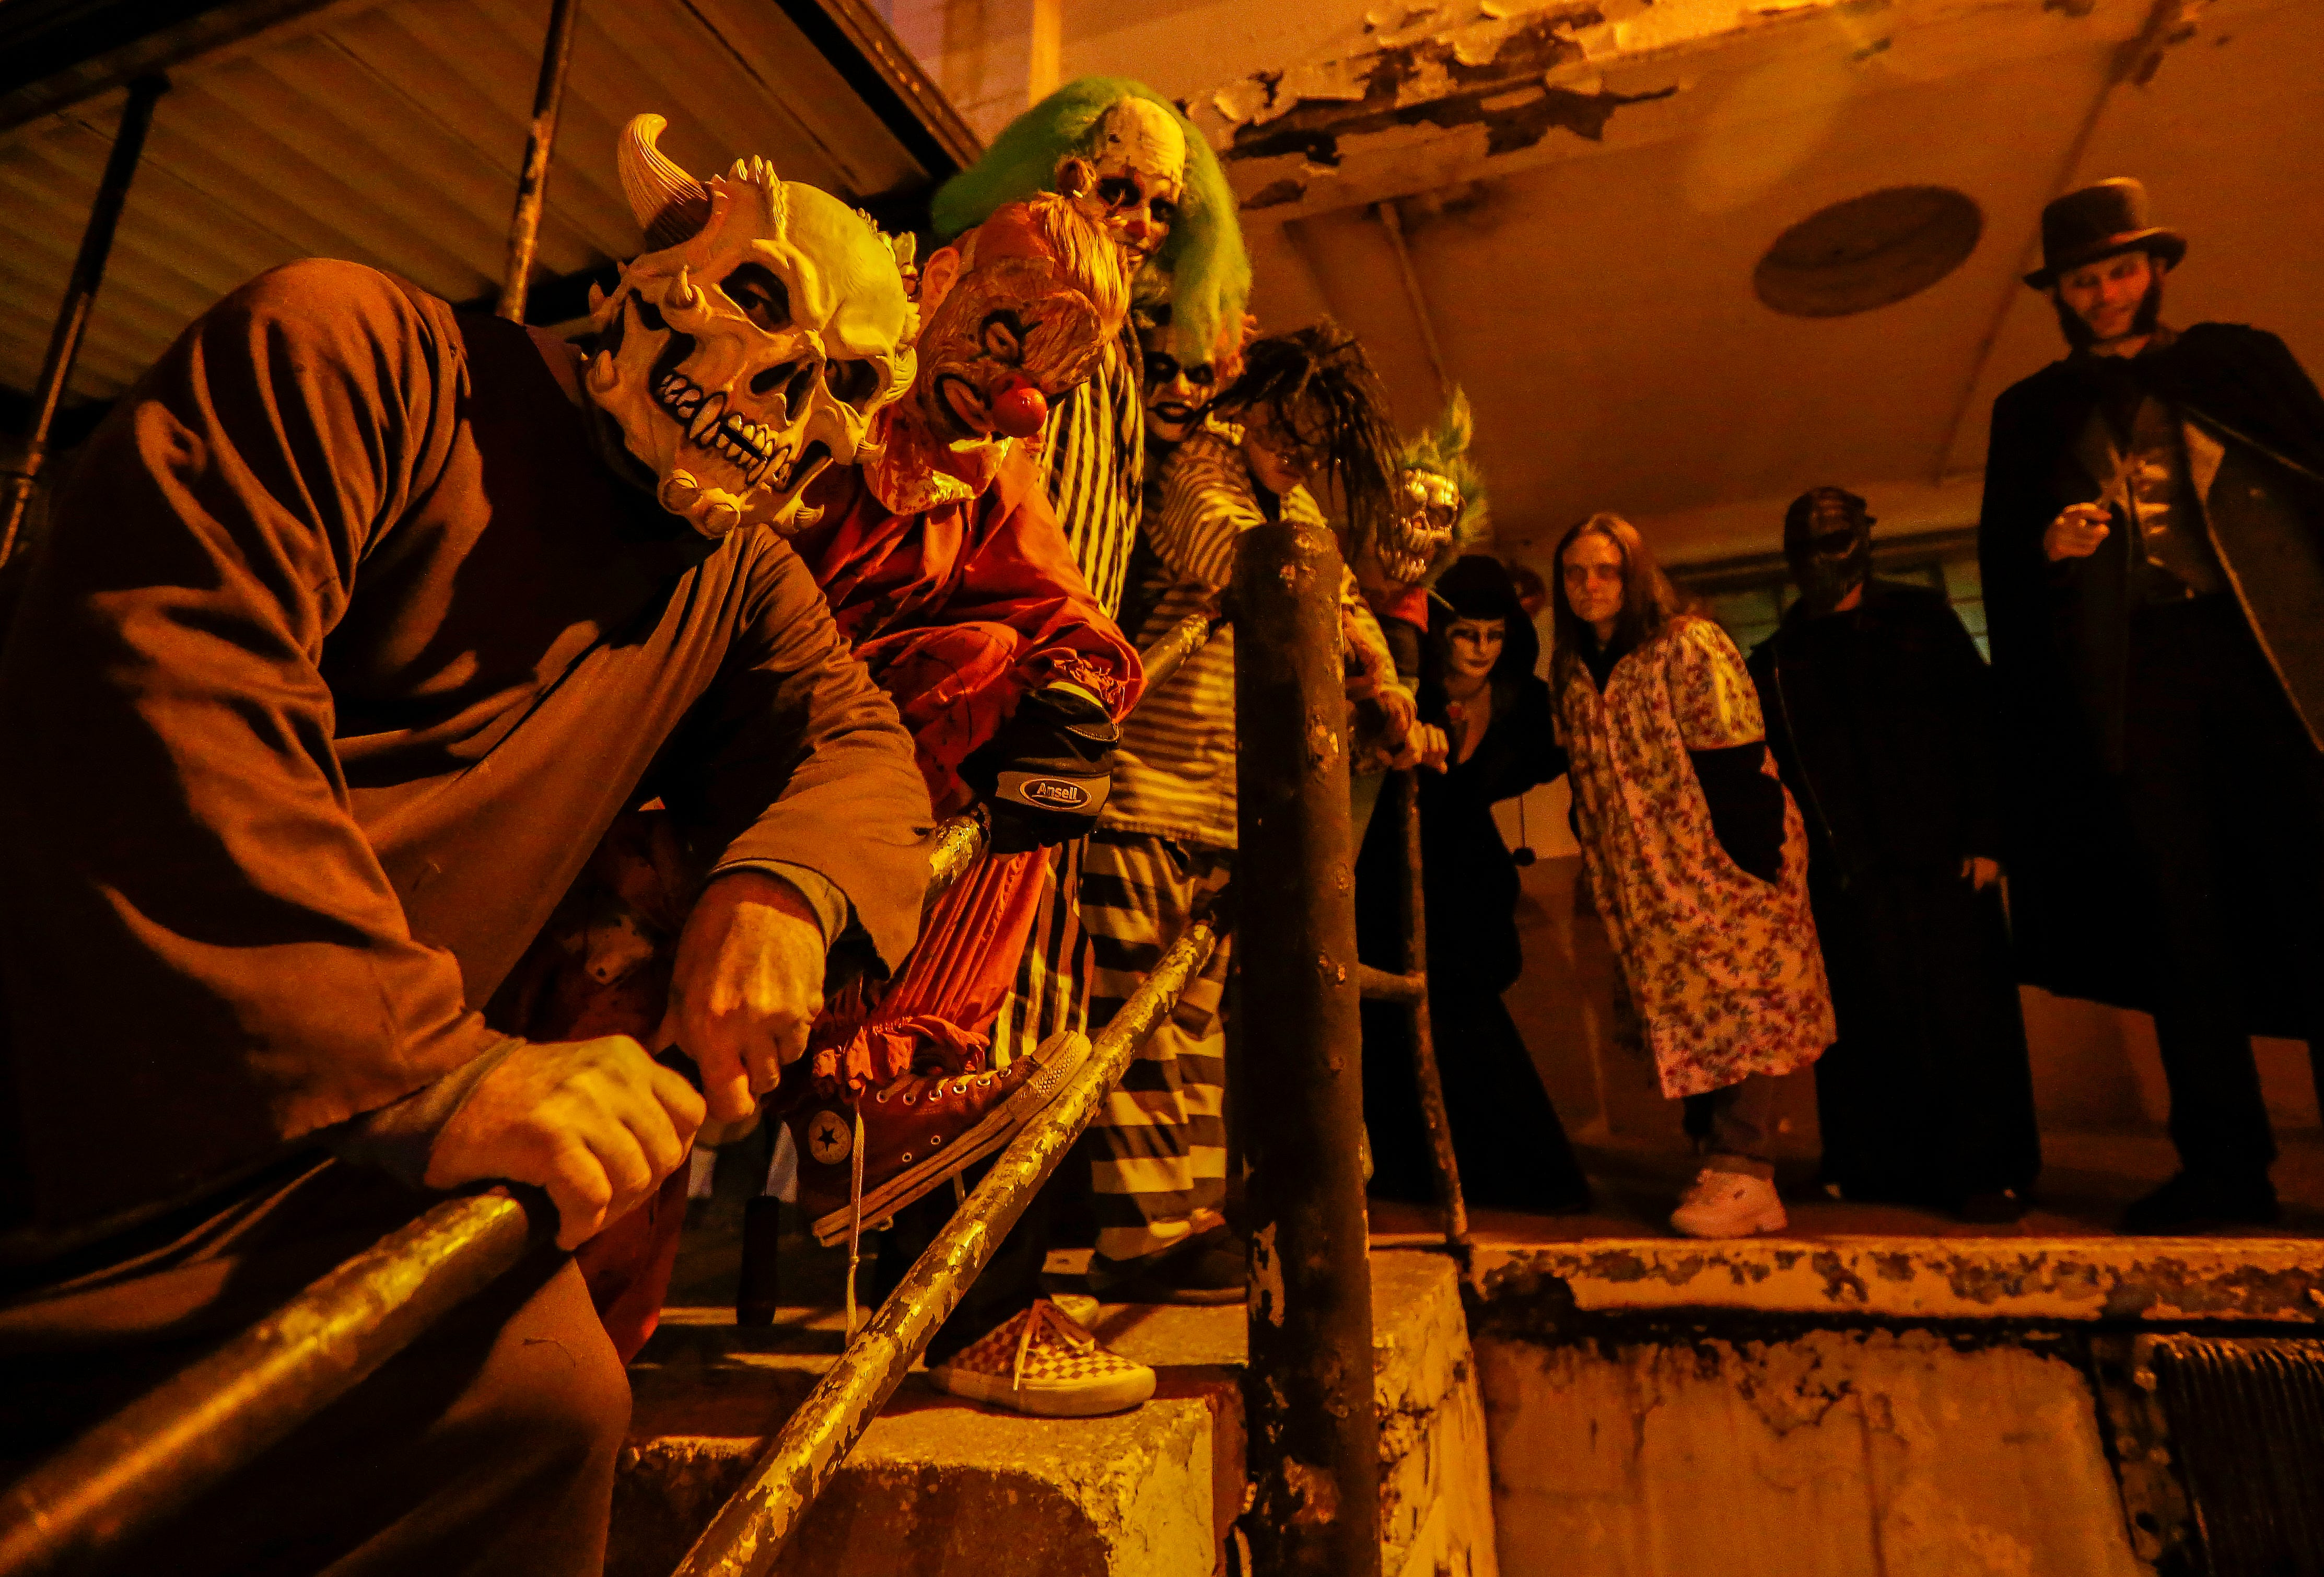 A host of scary characters wait to scare Springfield residents at Dungeons of Doom which is located at 701 W. Wall St. Dungeons of Dooms is owned by Sterling Mathis, who also owns Hotel of Terror.